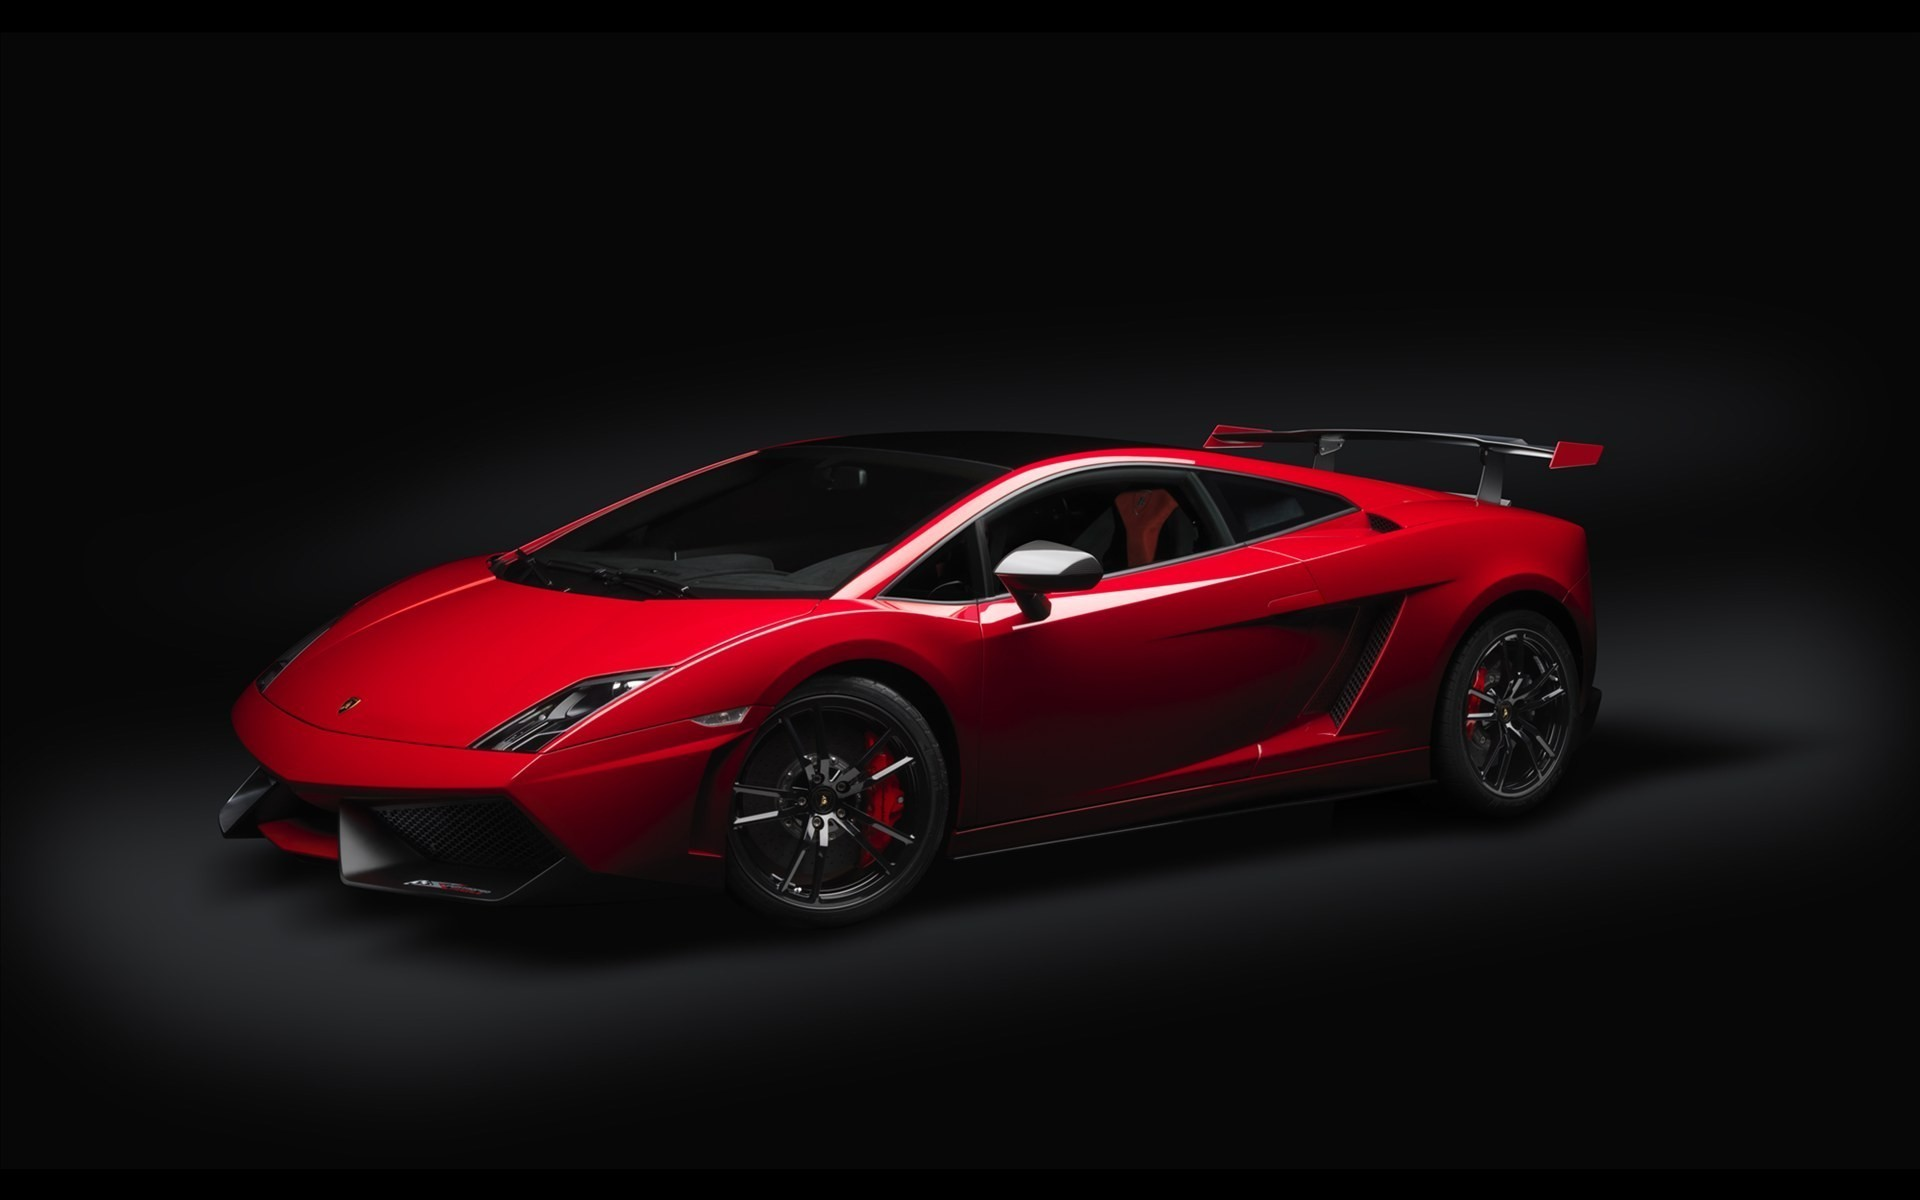 1920x1200 Lamborghini black background cars red vehicles wallpaper